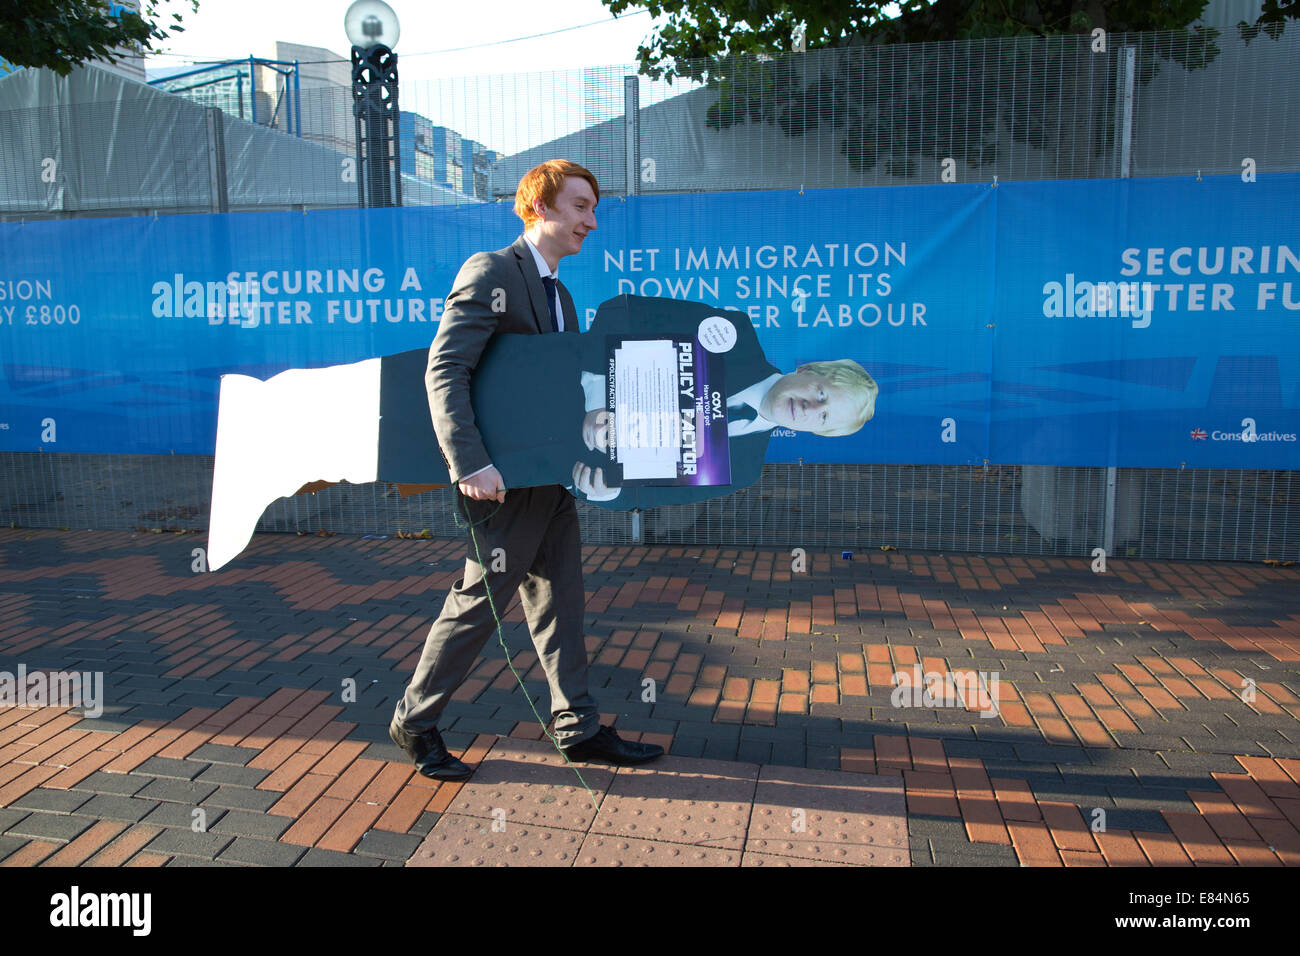 Birmingham, UK. 30th September, 2014. Conservative Party Conference, Birmingham, UK 30.09.2014 Picture shows a Tory - Stock Image